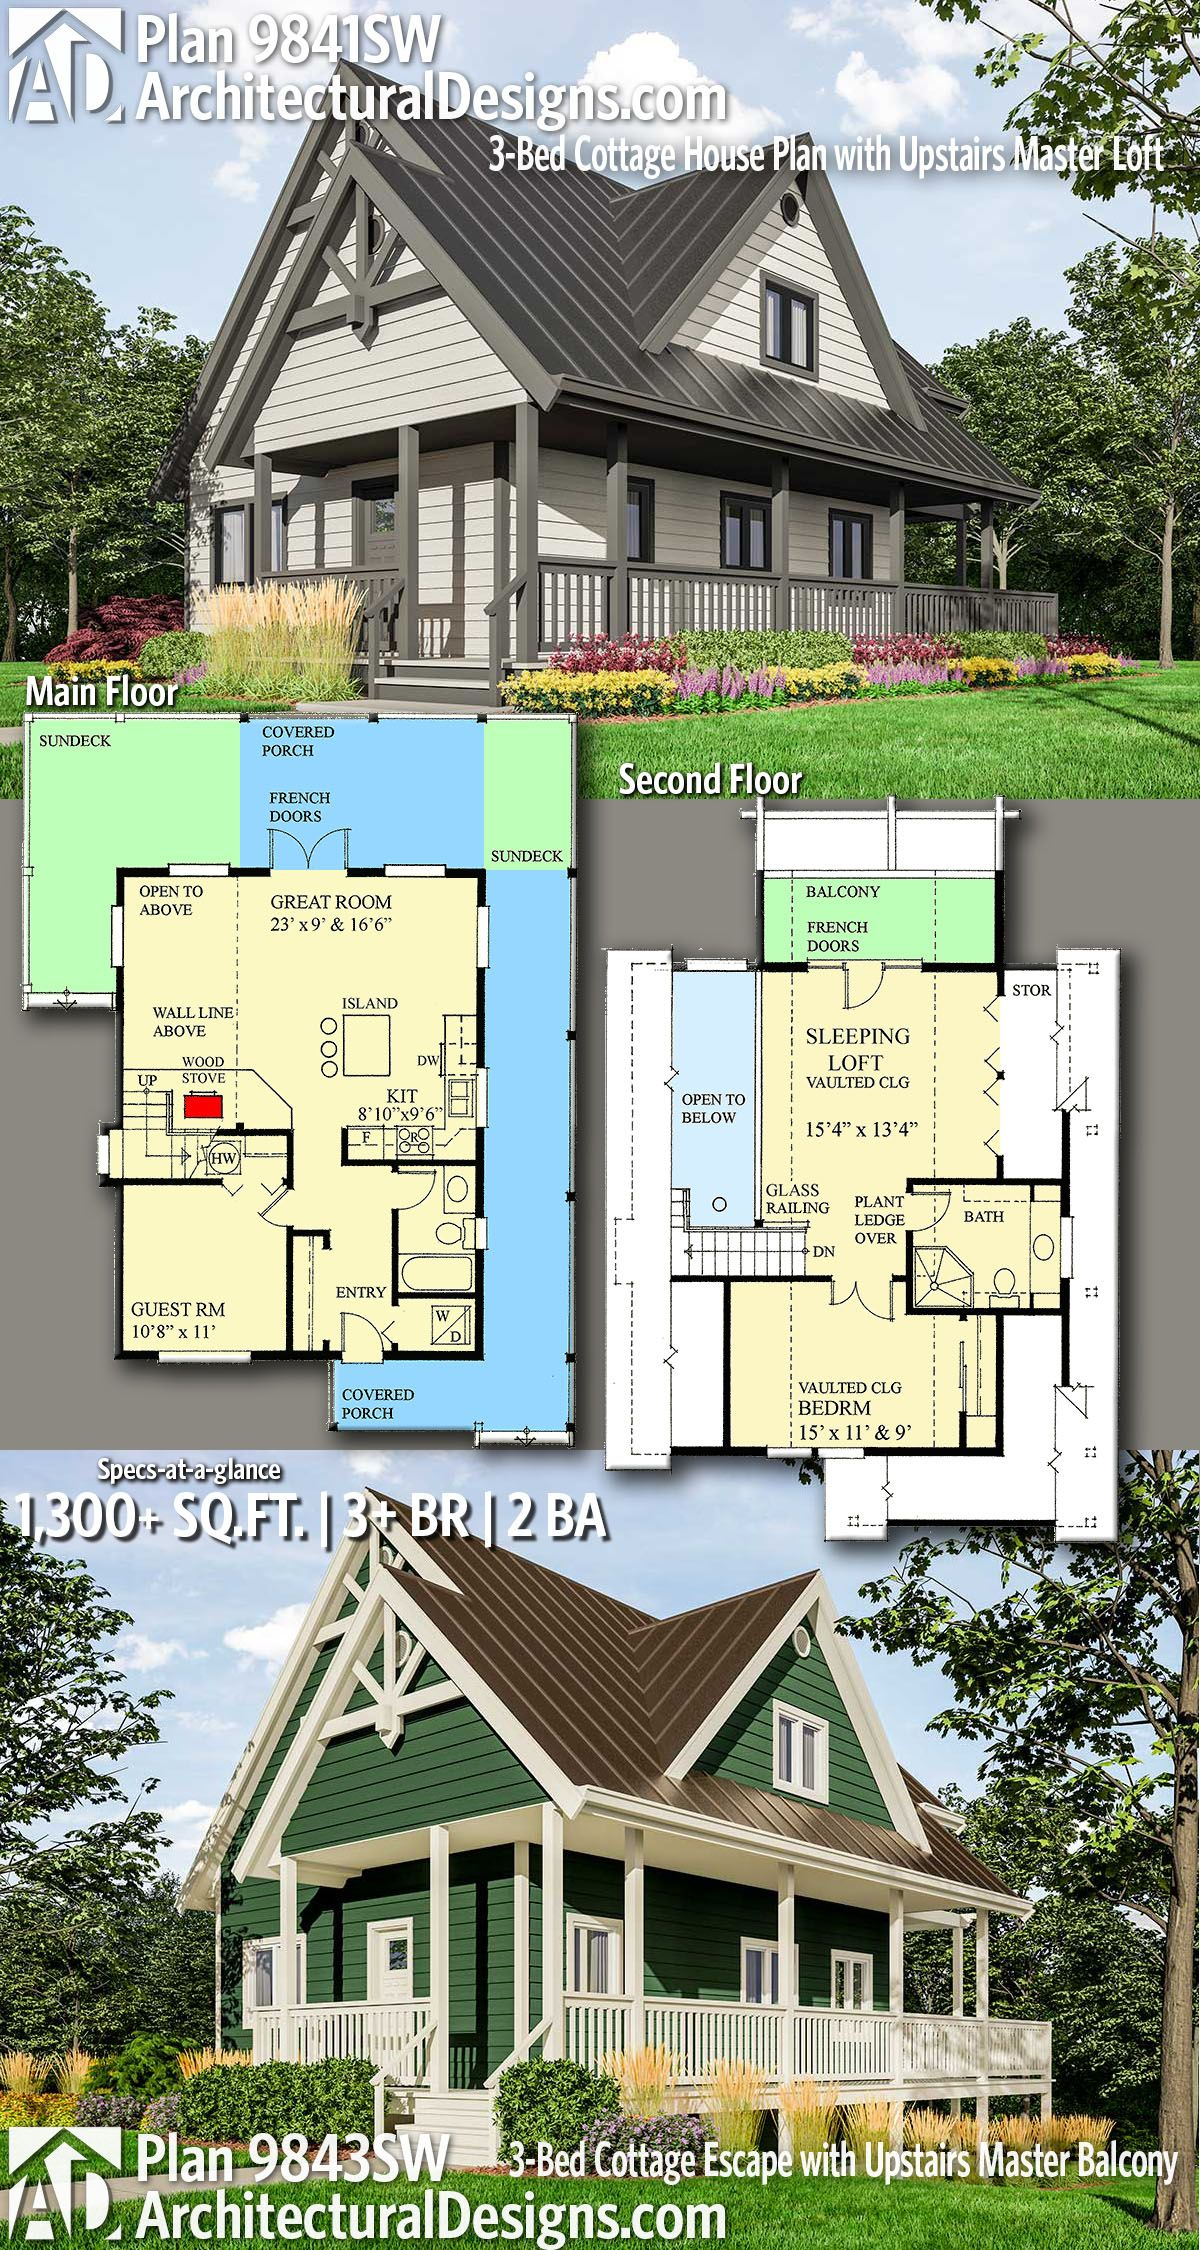 Plan 9841sw 3 Bed Cottage House Plan With Upstairs Master Loft Cottage House Plans Architectural Design House Plans House Plans